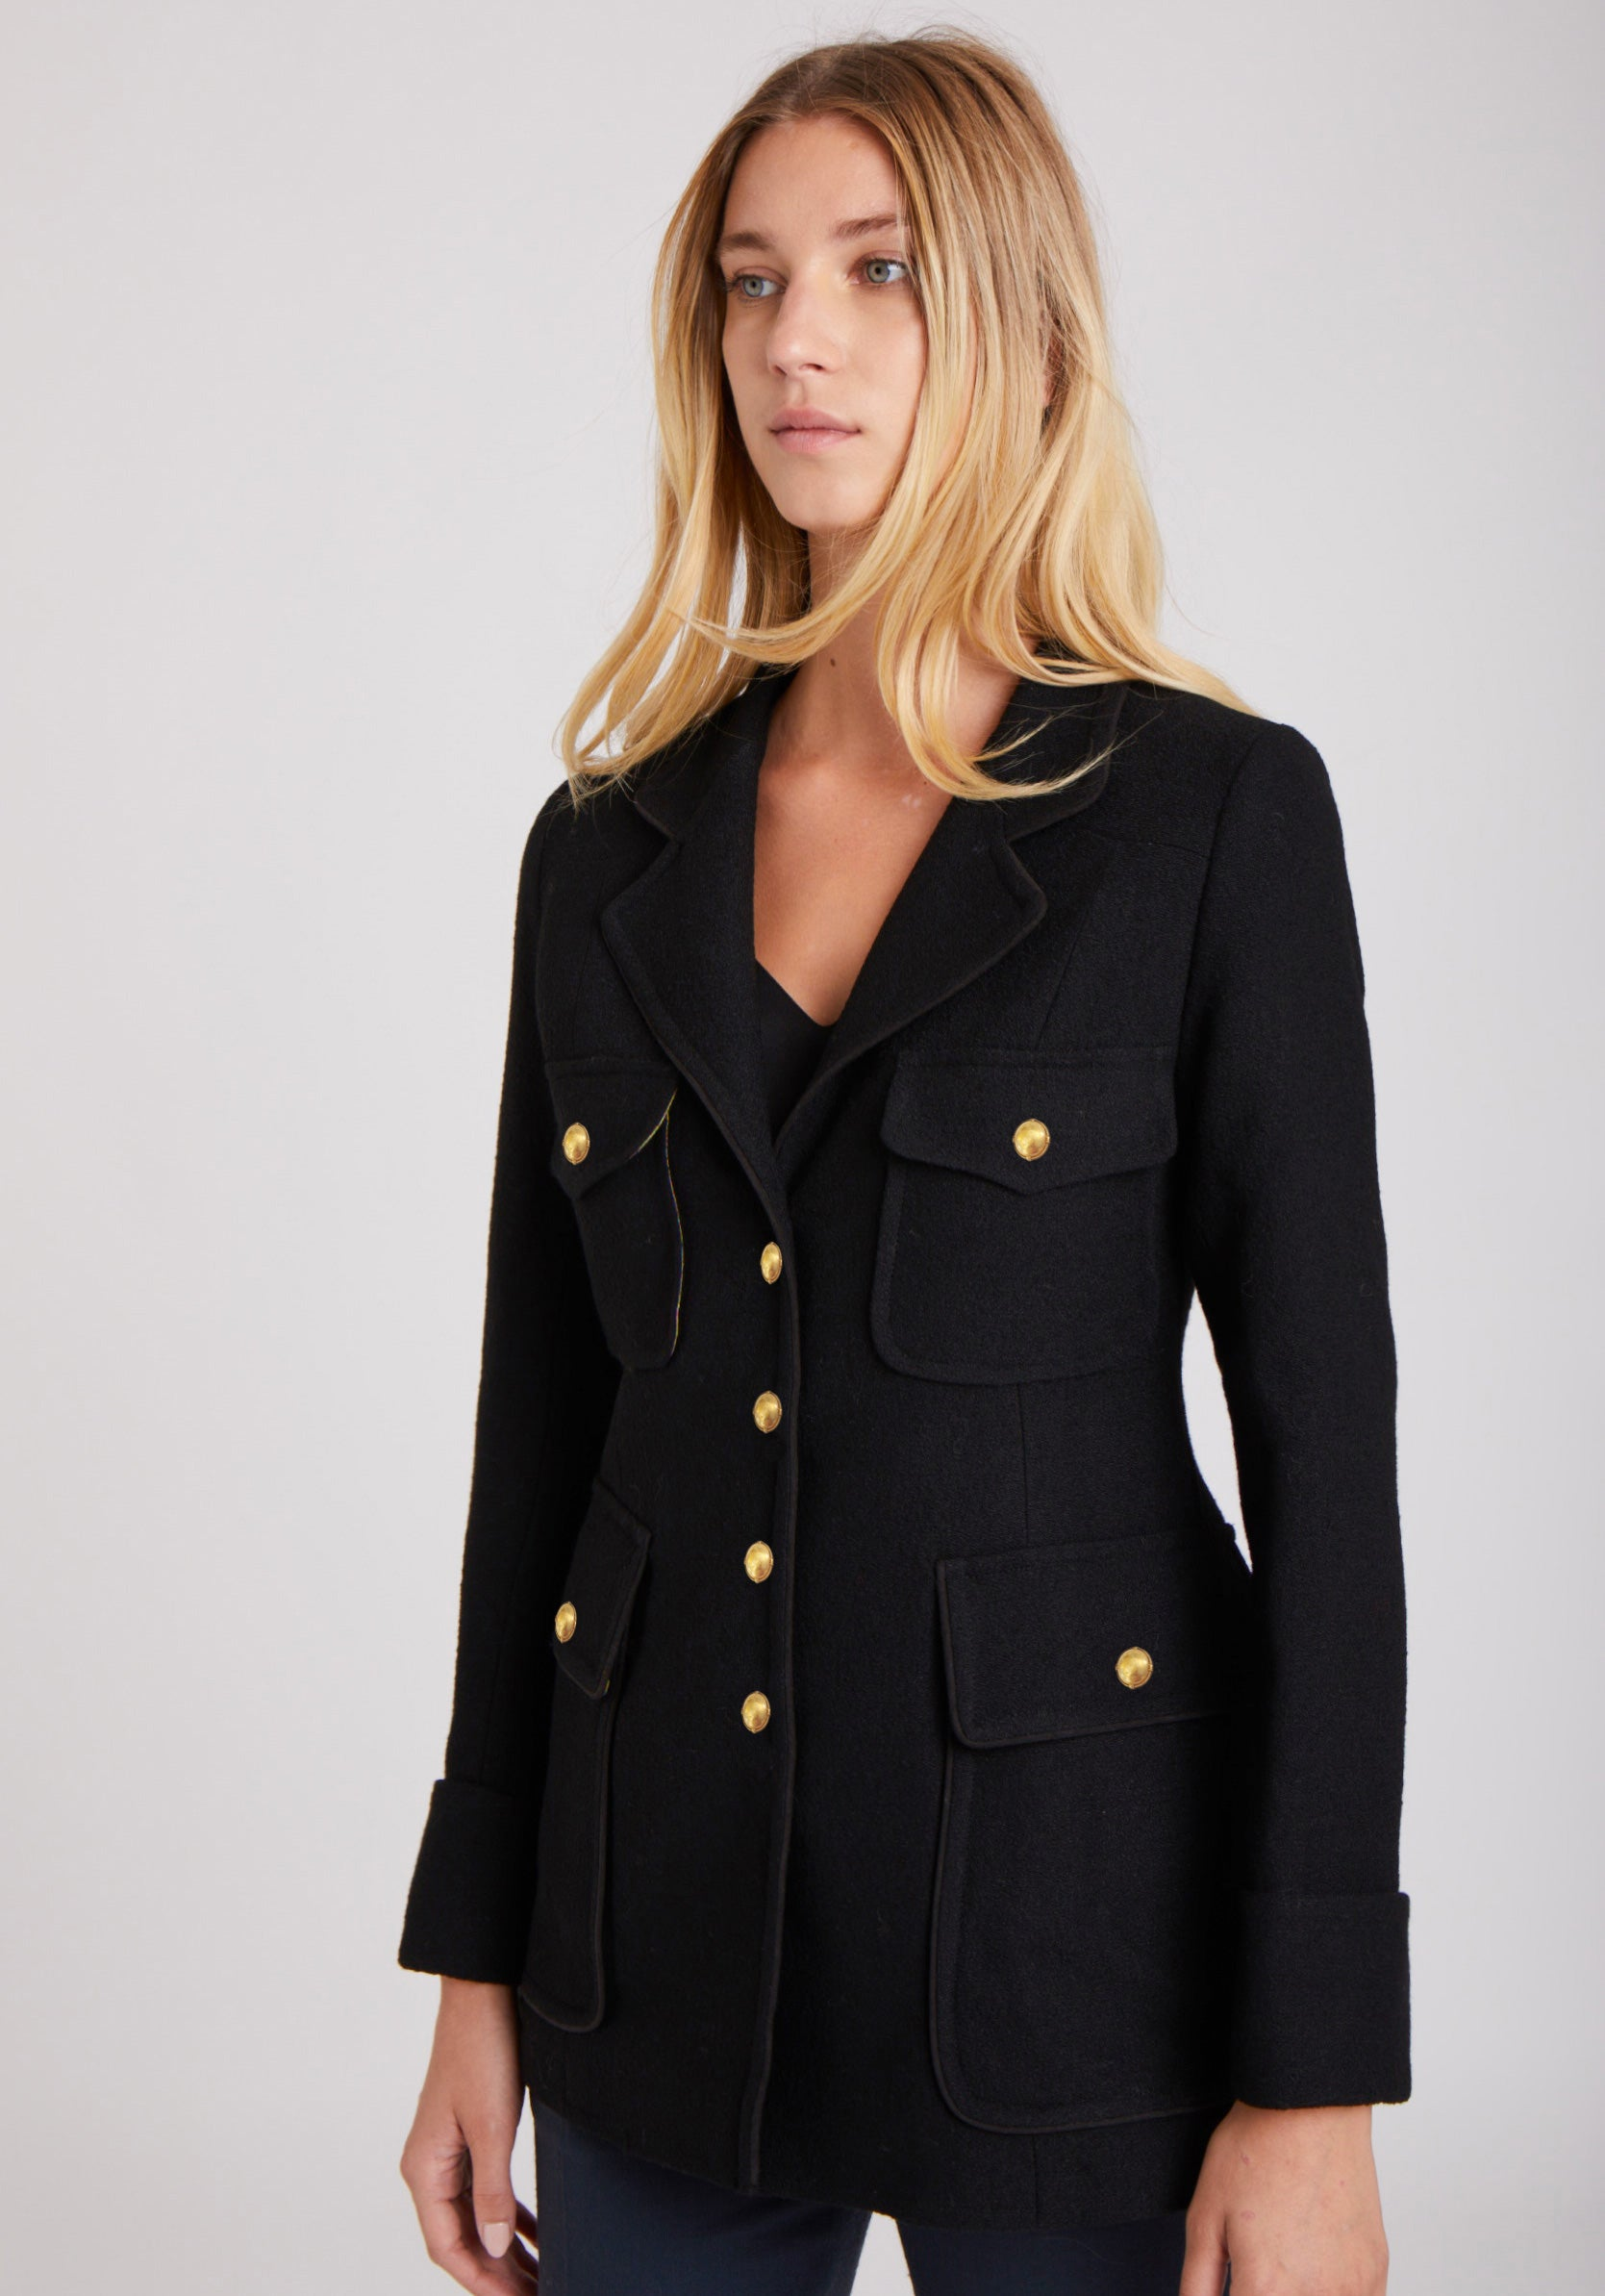 Westcott Jacket in Black Crepe Wool